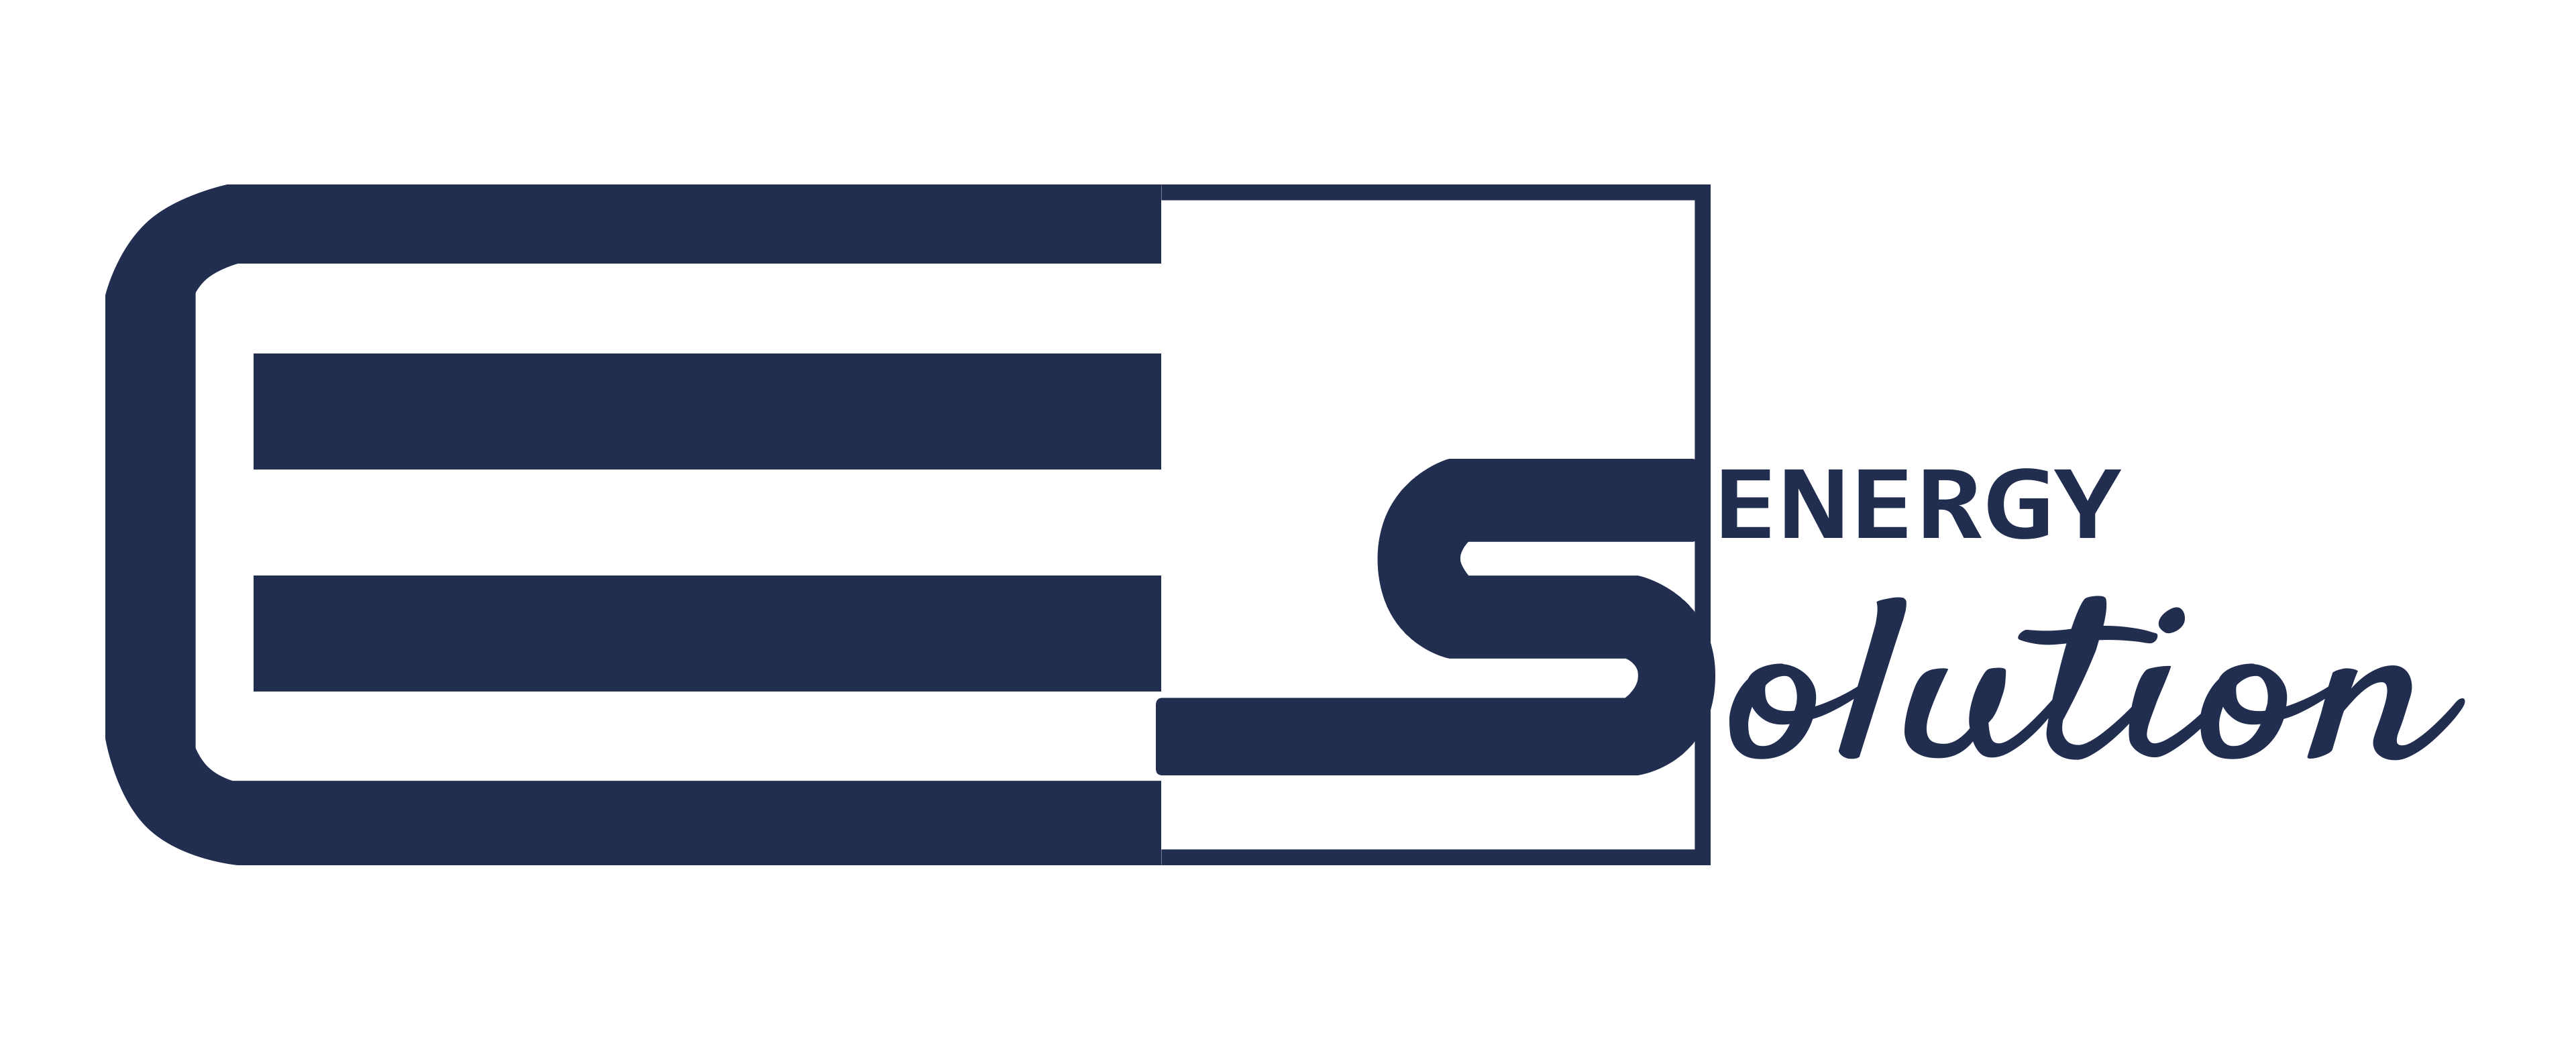 energy solution srl logo